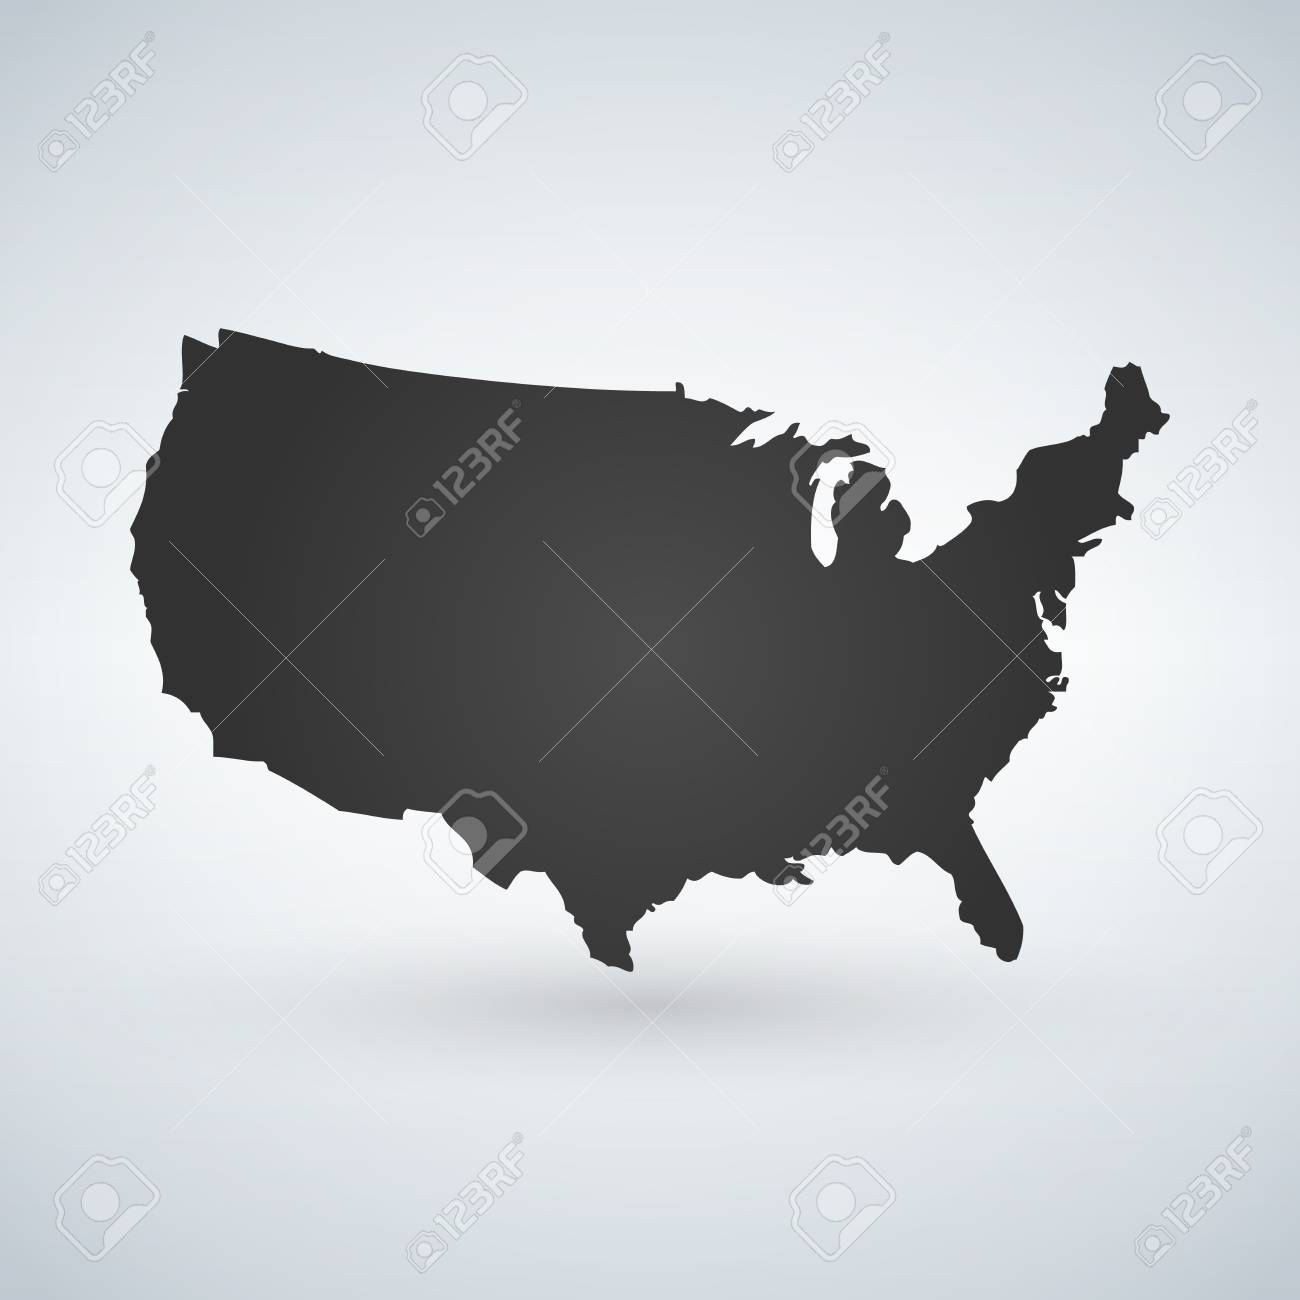 US Logo Or Icon With USA Letters Across The Map, United States ...